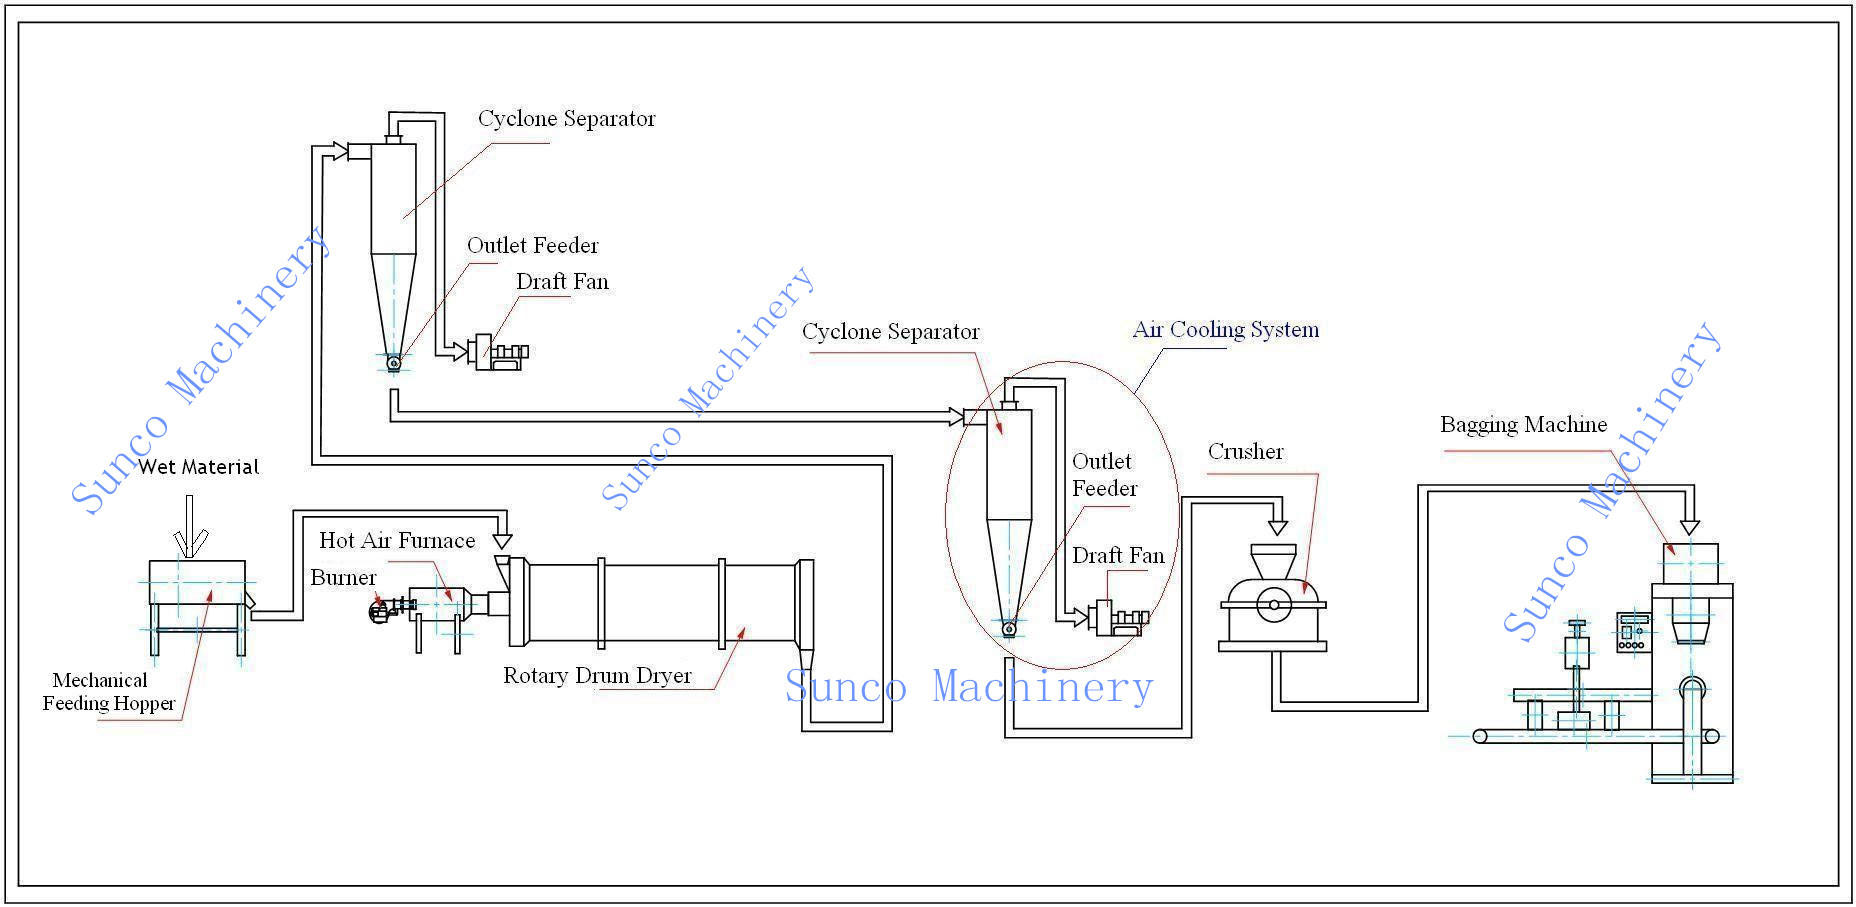 Apple Pomace Dryer, Pomace Dryer, Rotary Dryer, Pomace Drying System